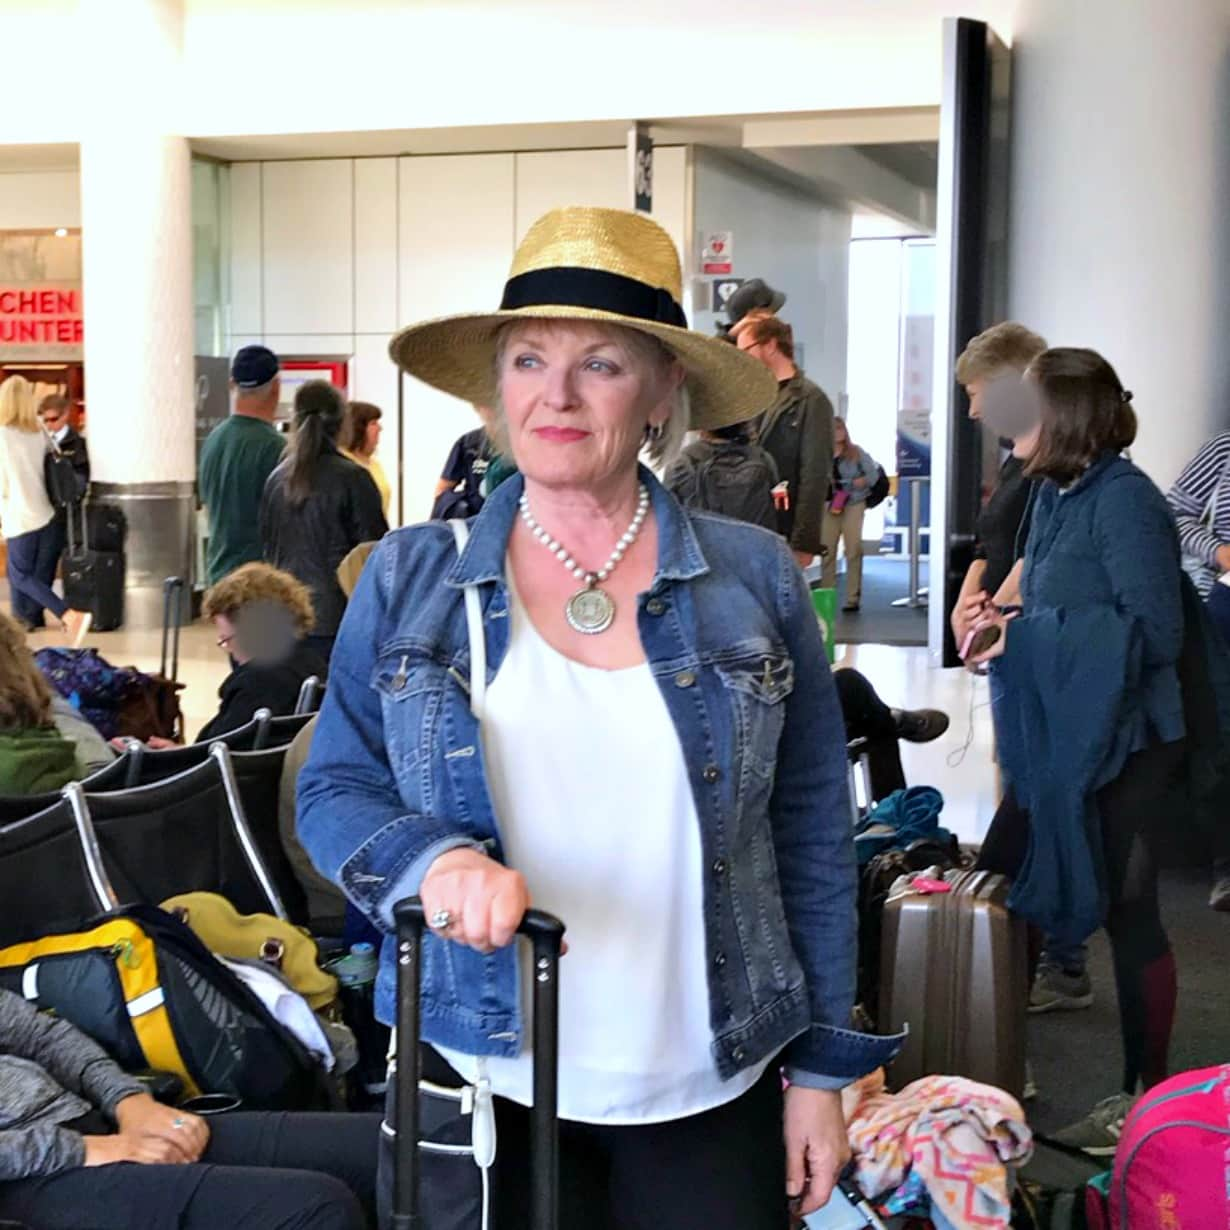 Early Morning Flight: What I Wore